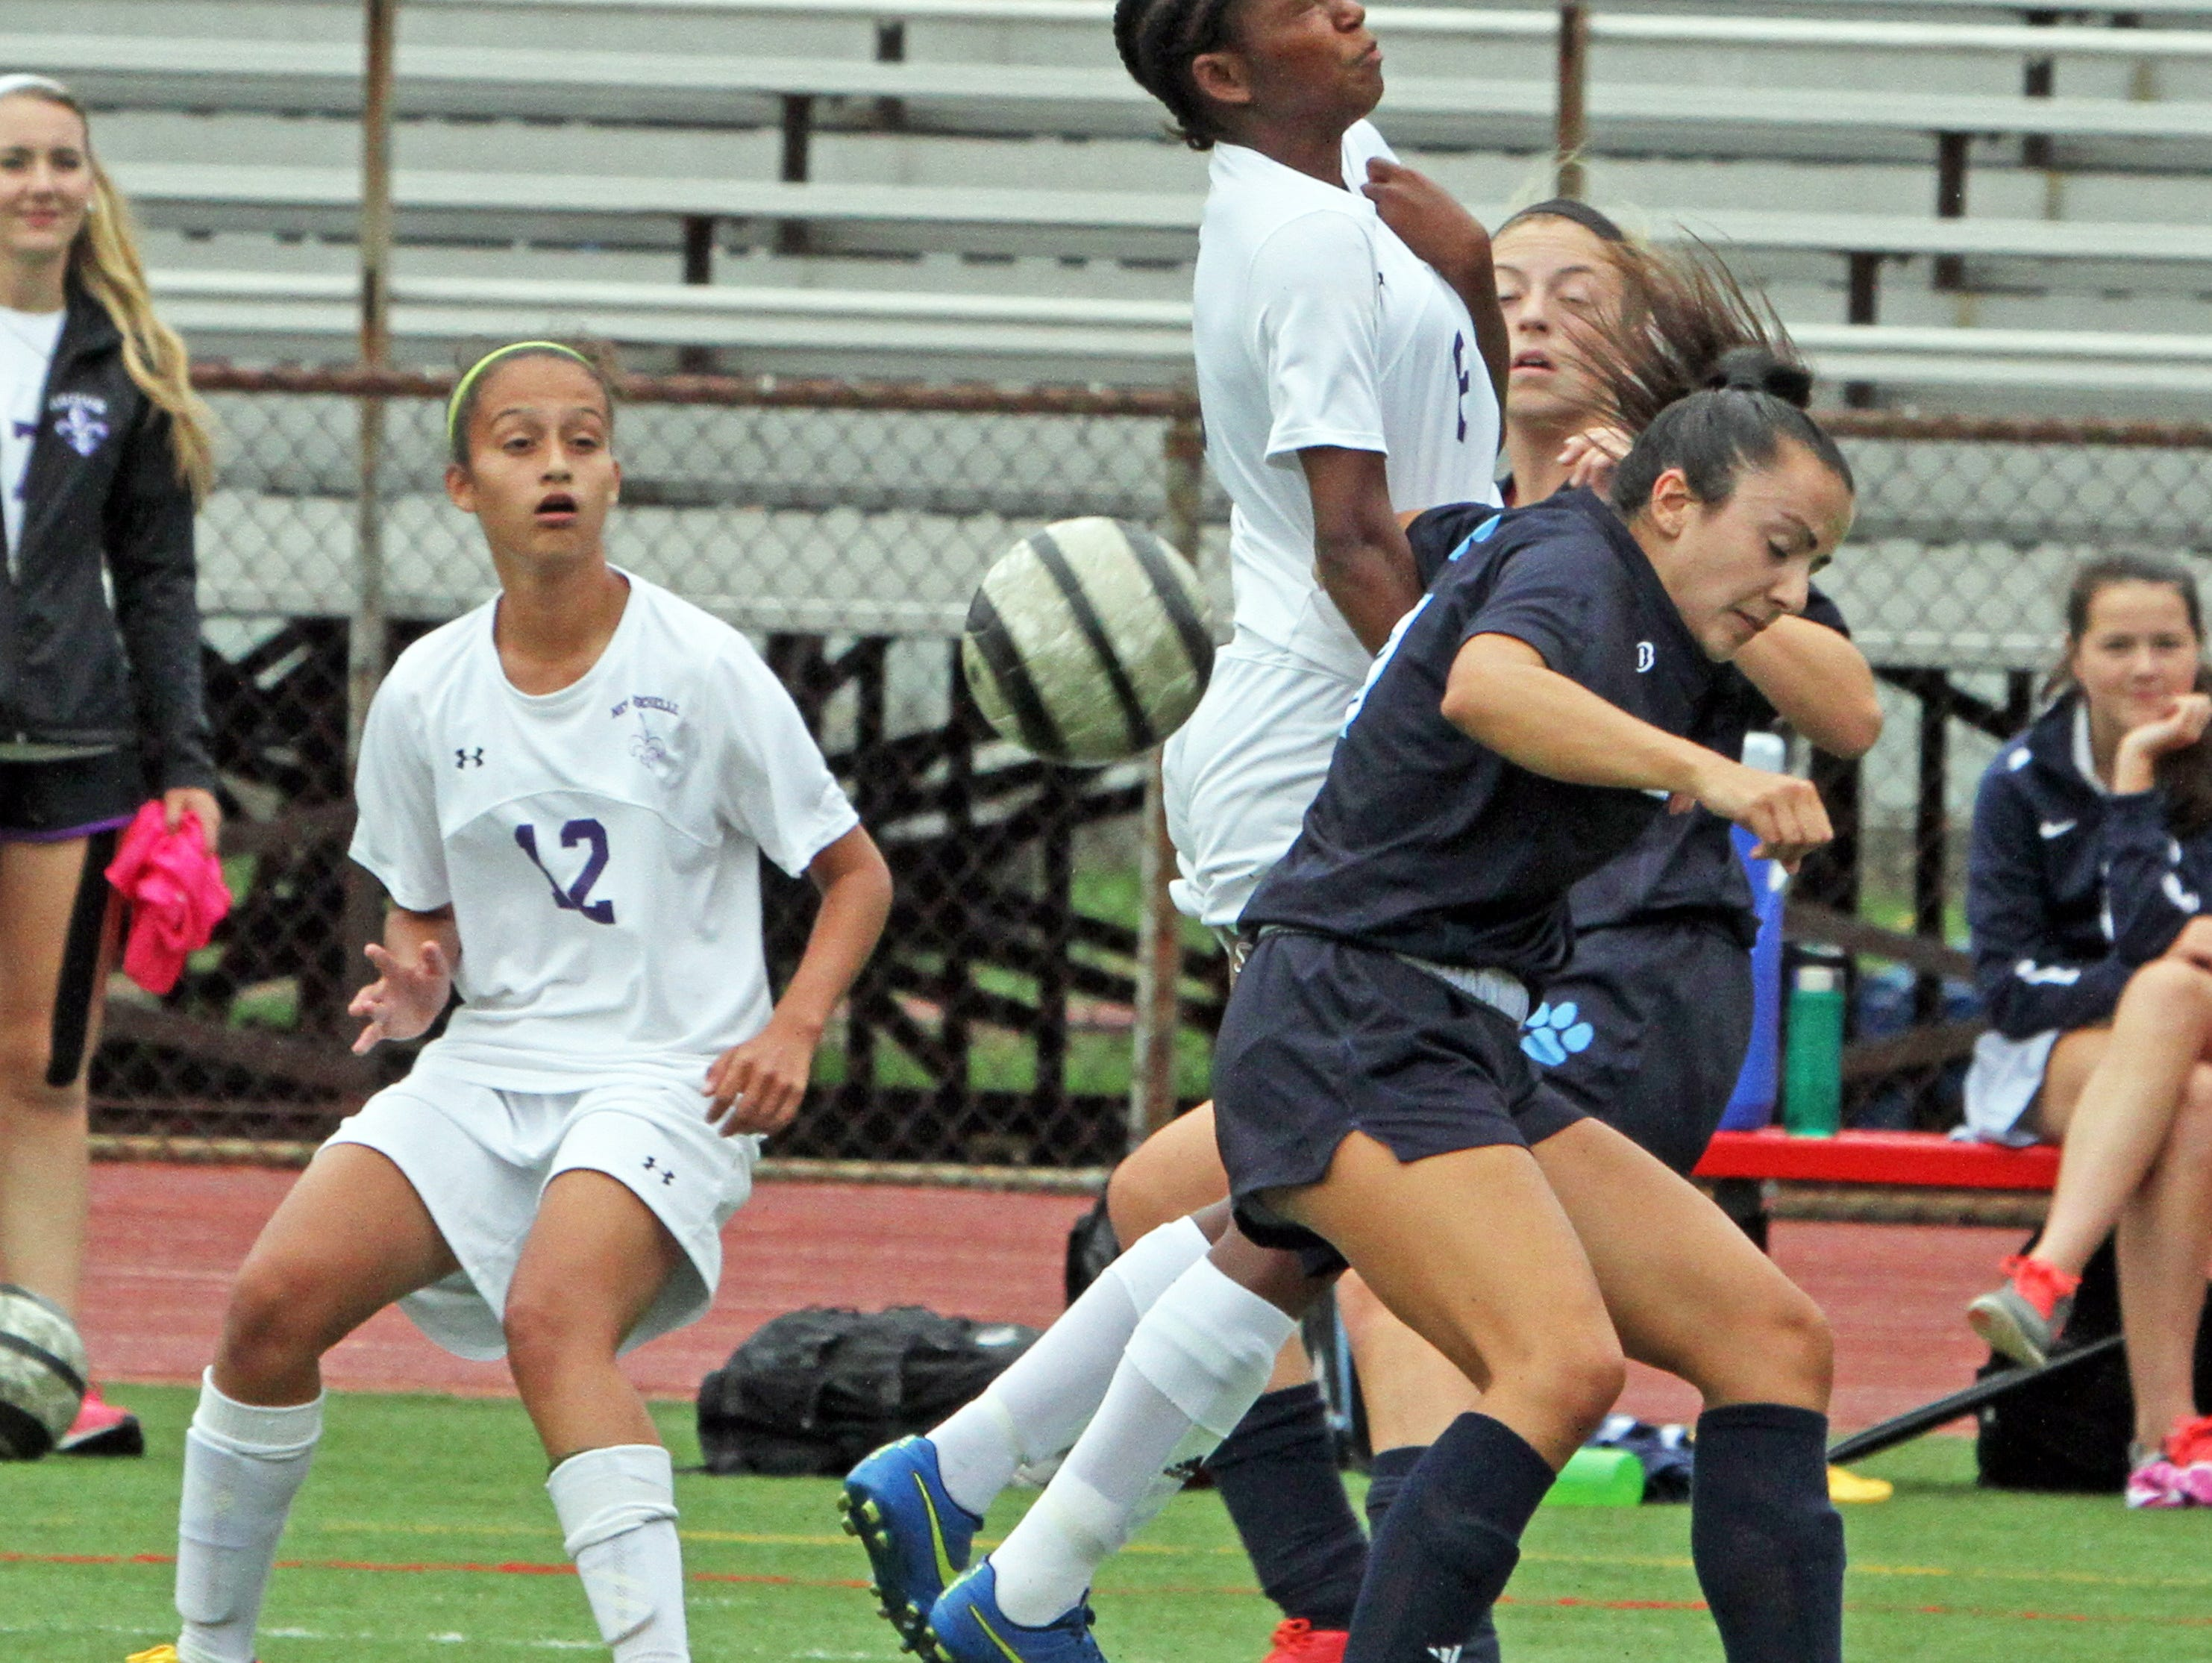 Ursuline and New Rochelle battled each other in a varsity soccer match at New Rochelle High School Sept. 30, 3015.